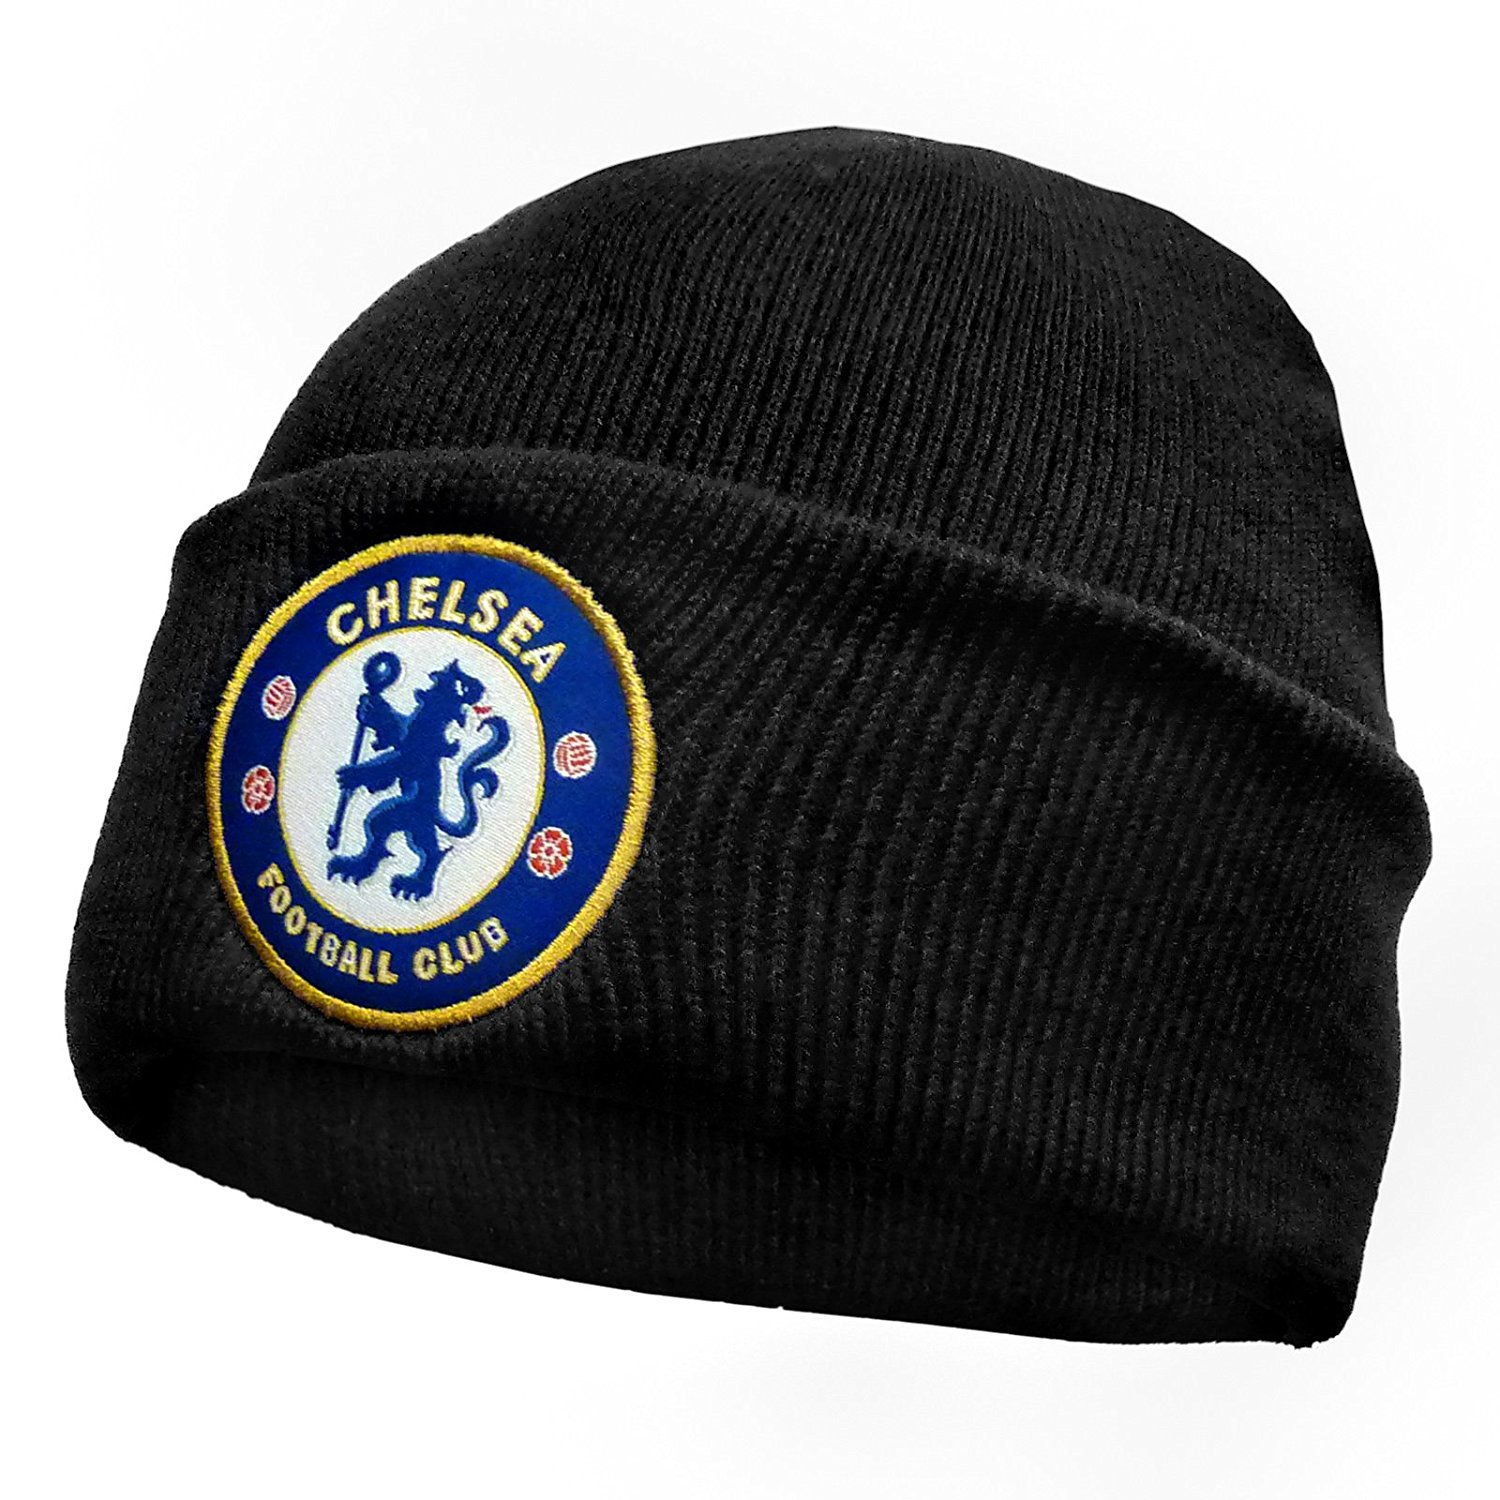 32b2f885325 Get Quotations · Chelsea Football Club Official Soccer Gift Knitted Bronx  Beanie Hat Crest